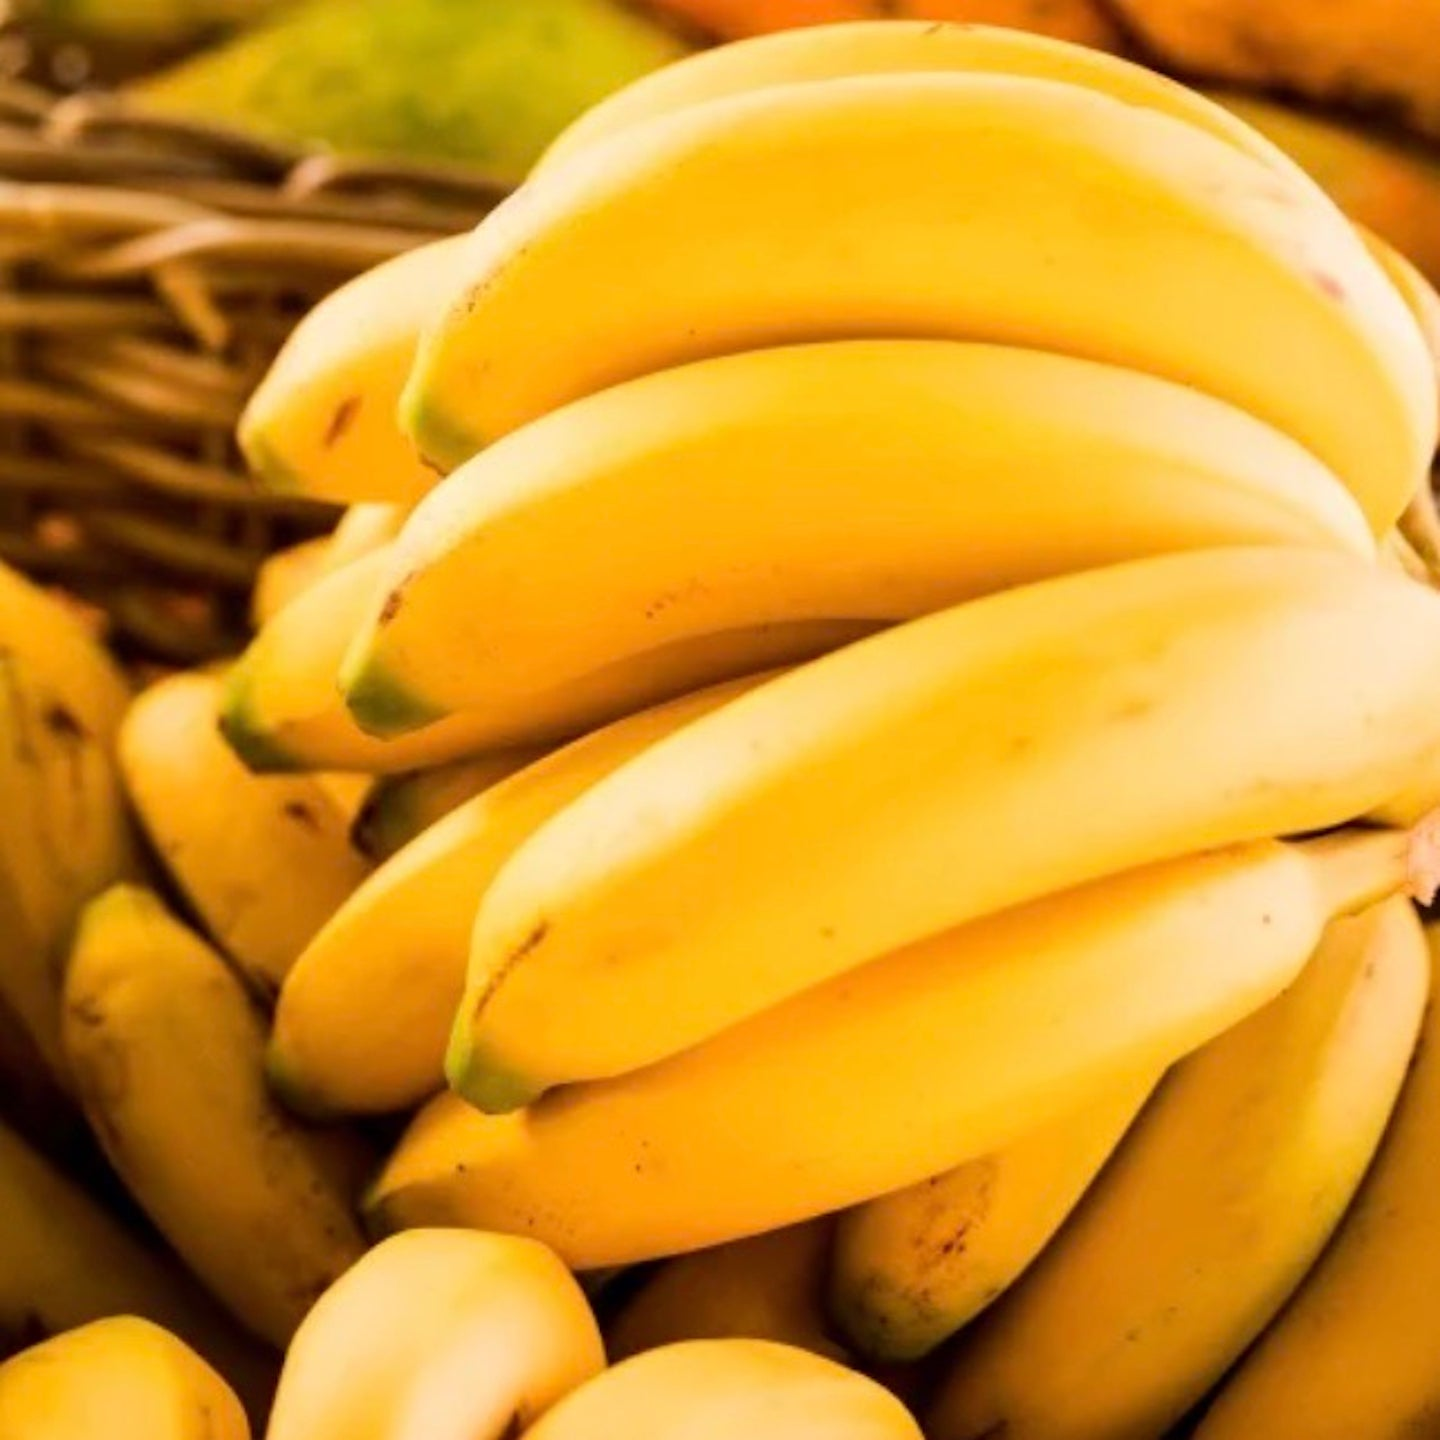 bananas-online-grocery-supermarket-delivery-singapore-thenewgrocer